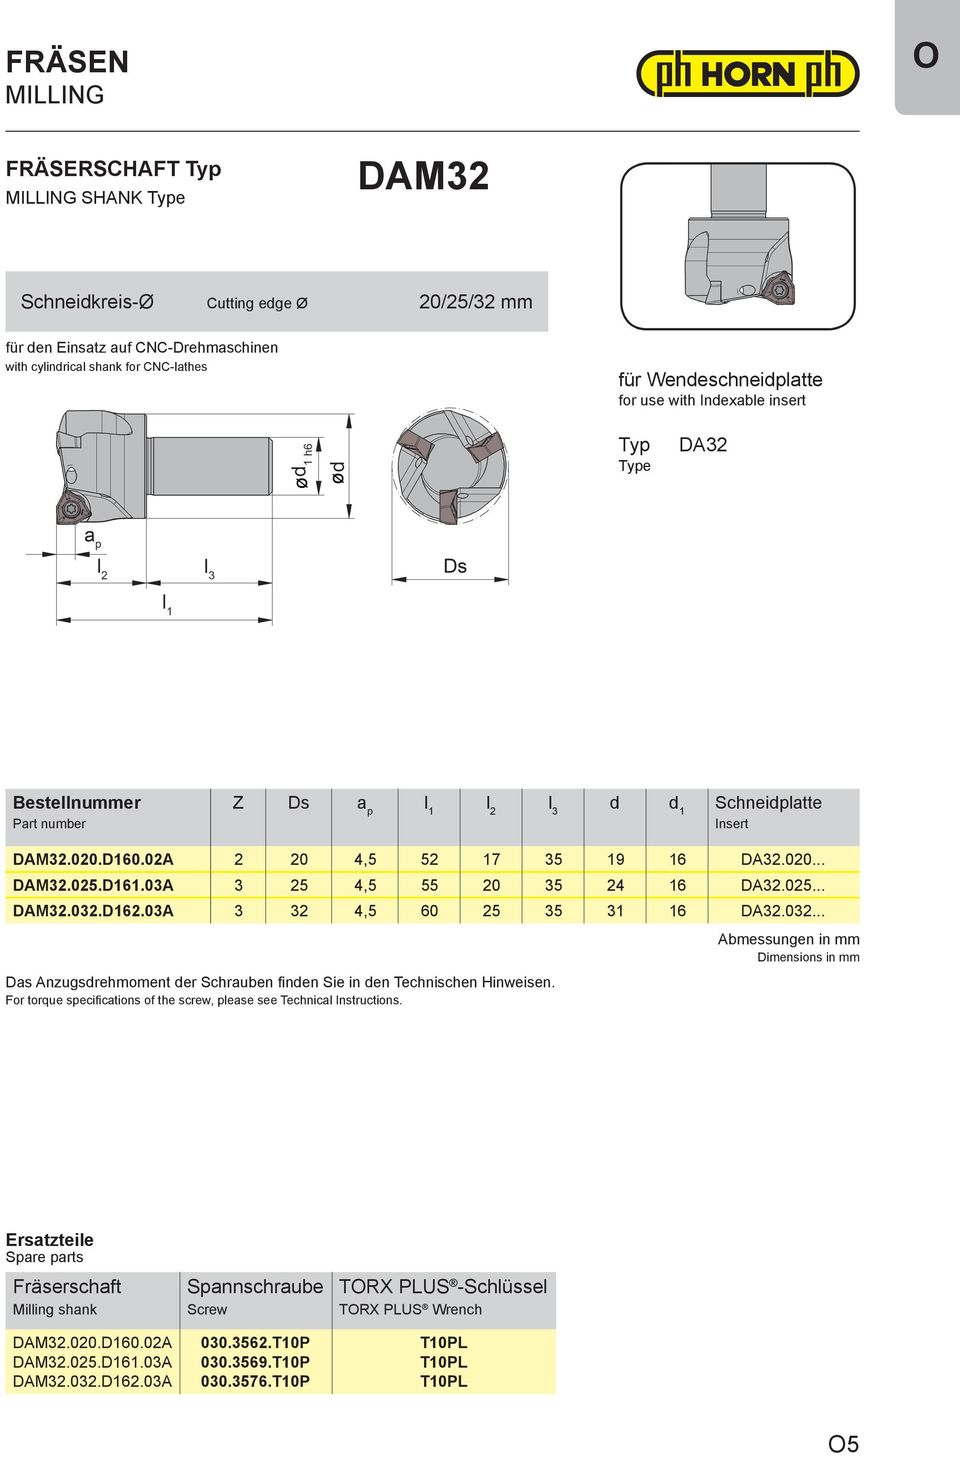 03A 3 32 4,5 60 25 35 31 16.032... Das Anzugsdrehmoment der Schrauben finden Sie in den Technischen Hinweisen. For torque specifications of the screw, please see Technical Instructions.